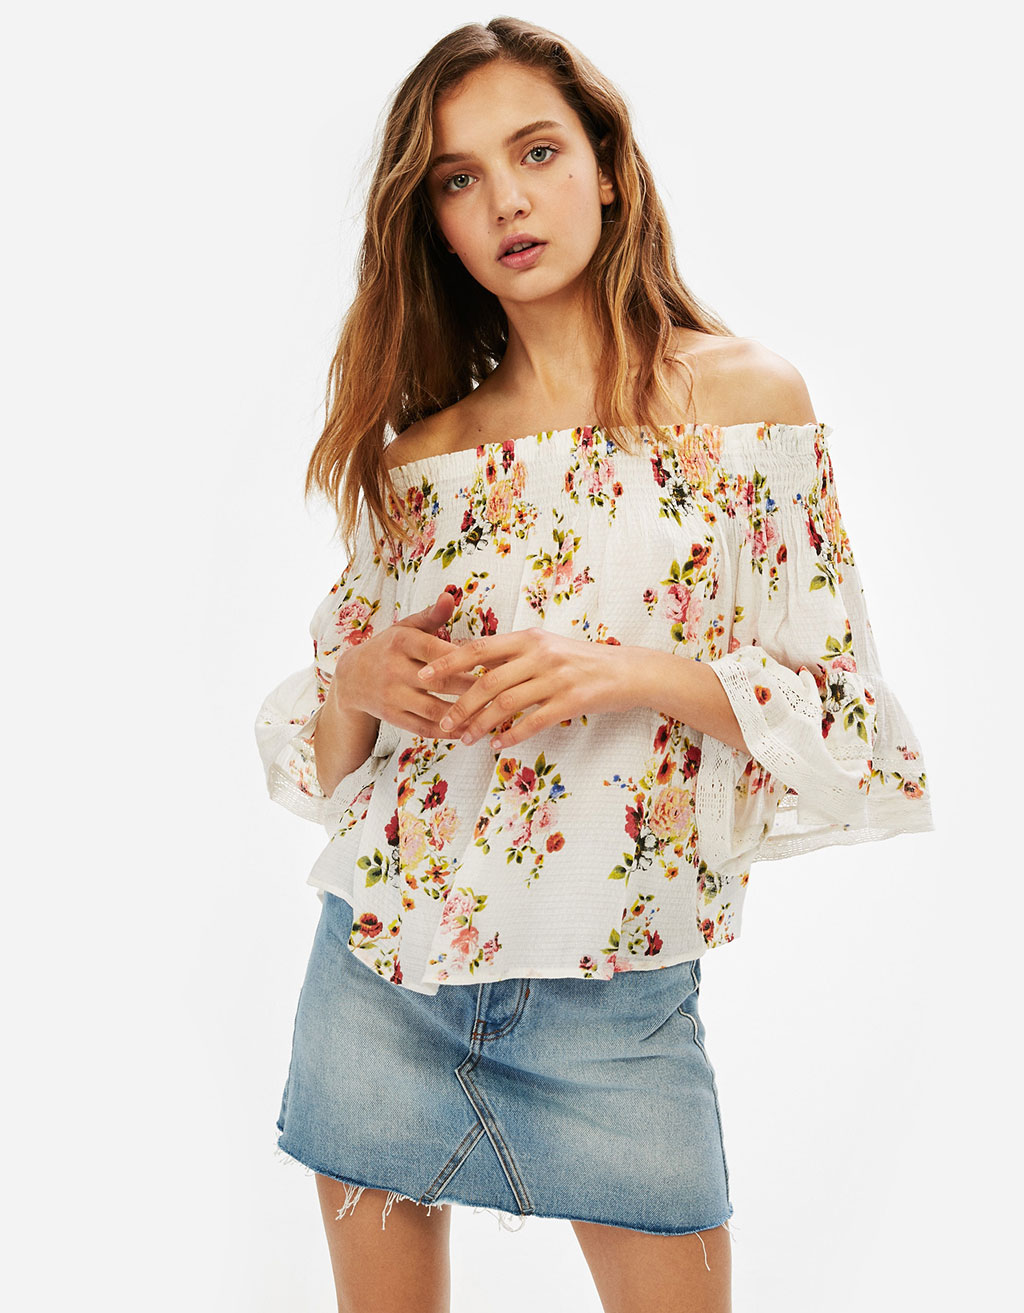 Blouse with 3/4 length sleeves and elastic neckline